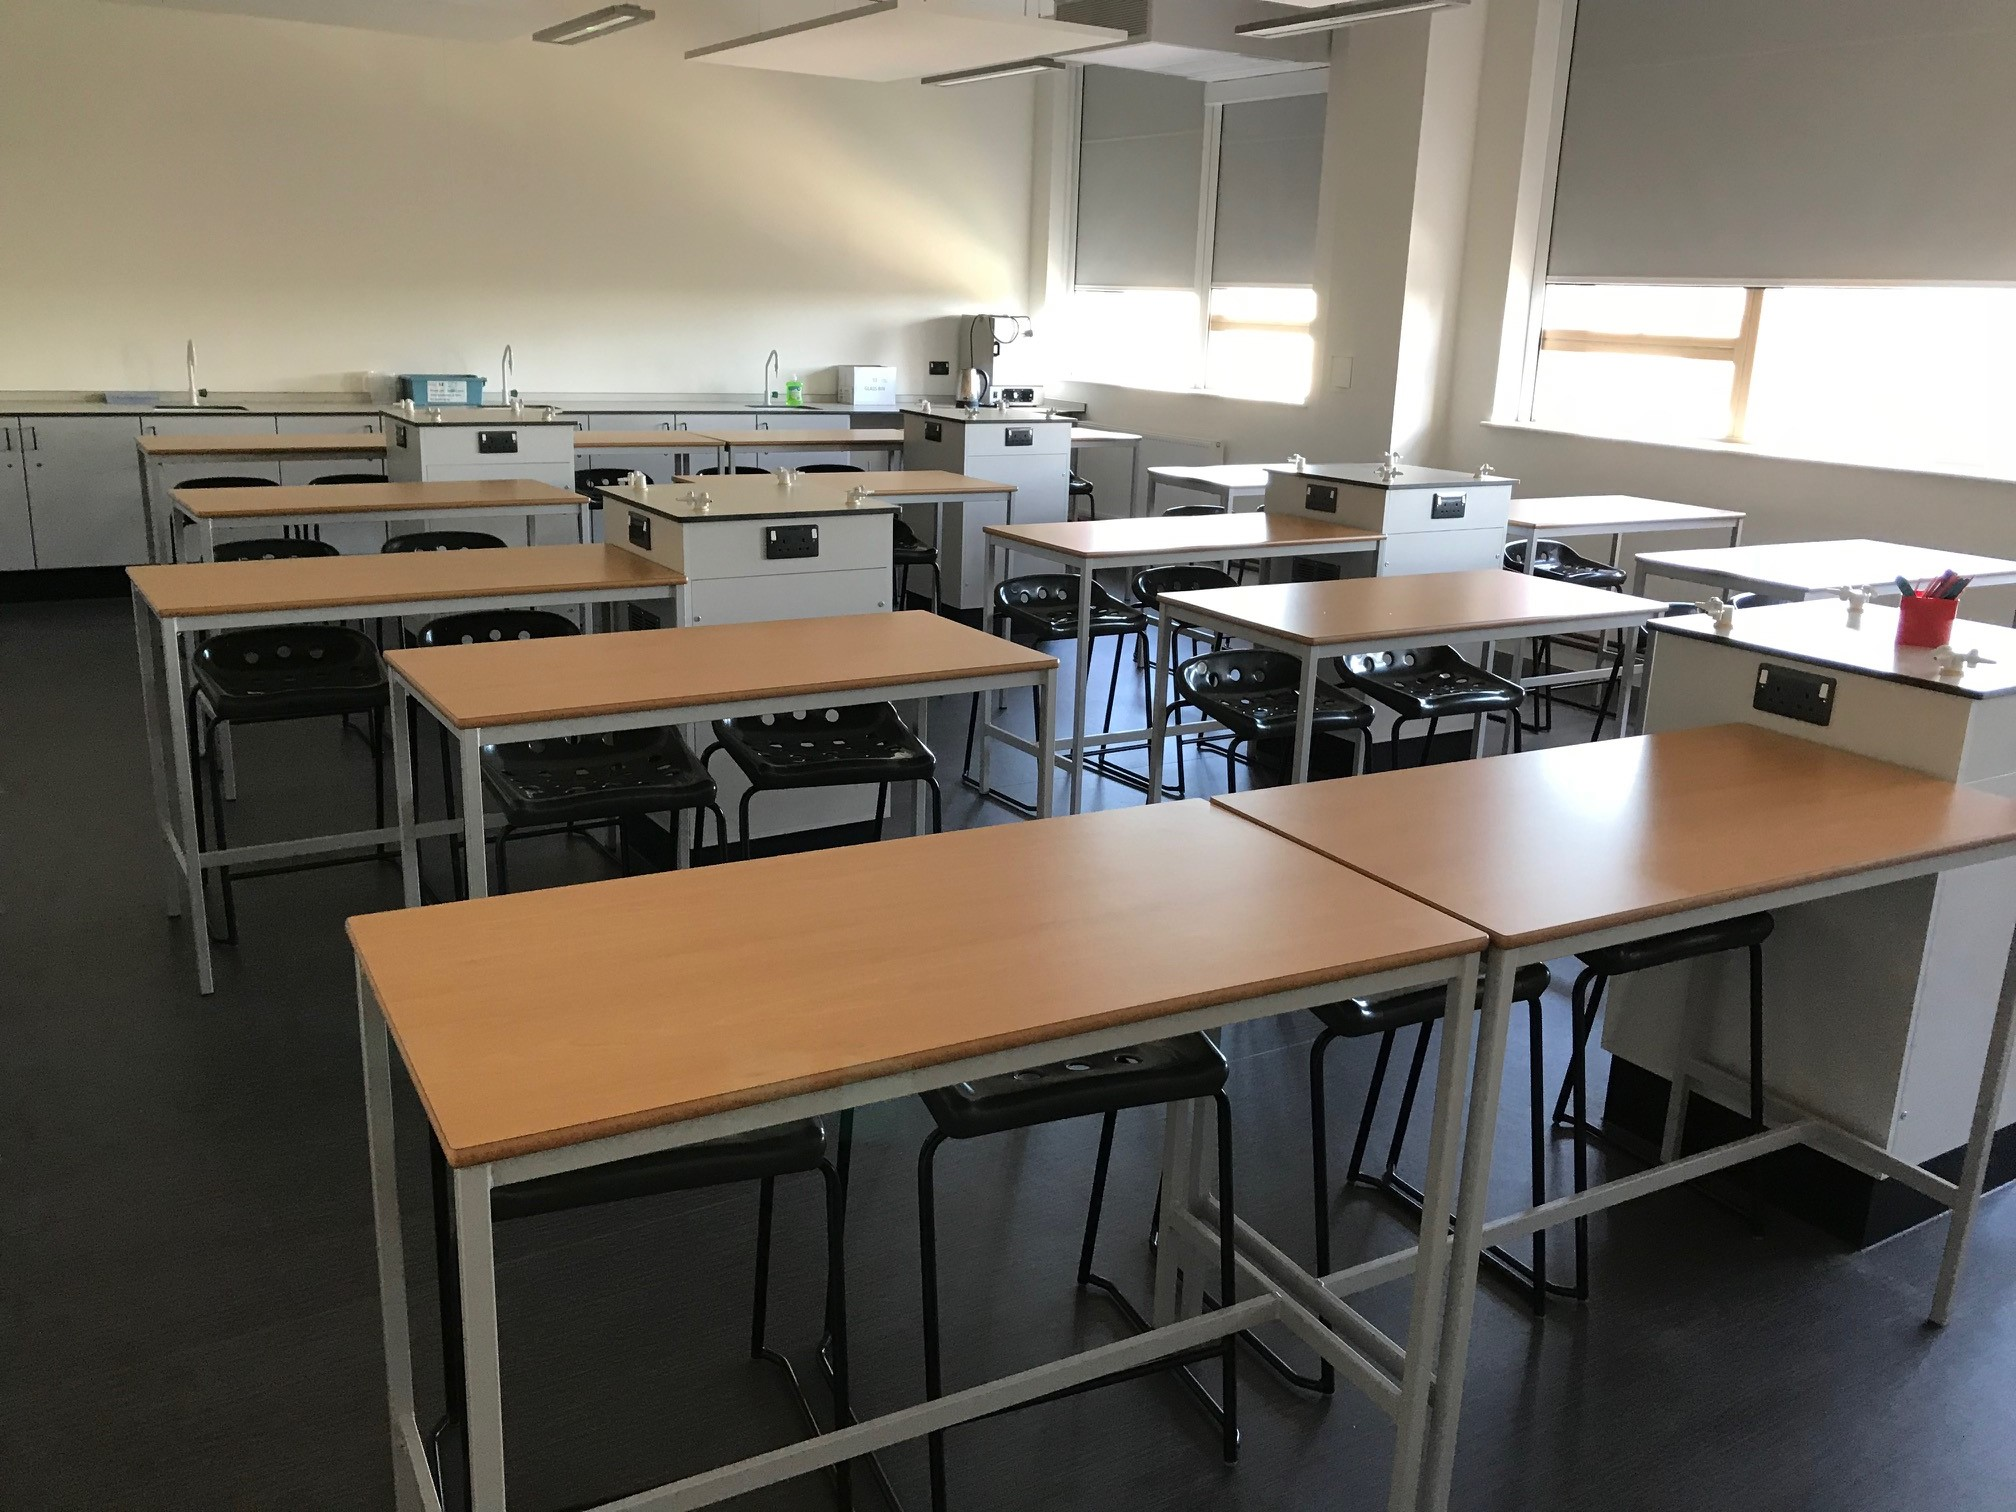 Furniture Installation Meopham School, Kent